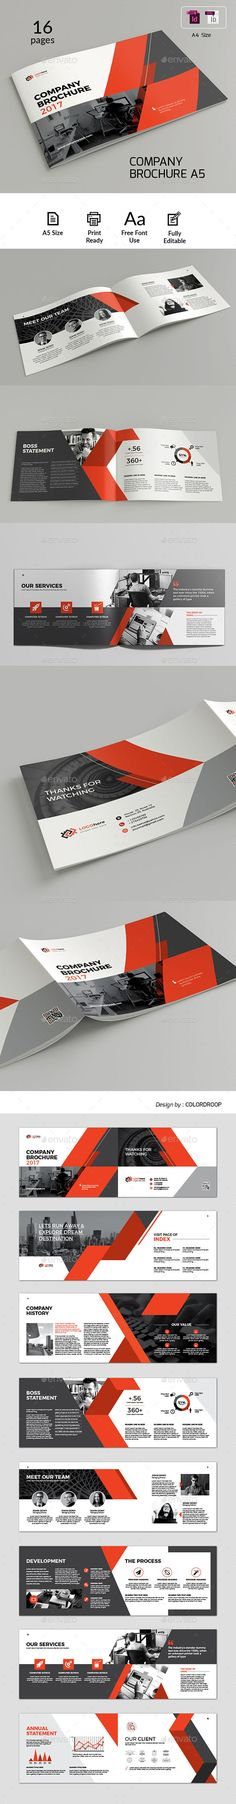 A5 Landscape Brochure — InDesign INDD #company #landscape • Download ➝ https://graphicriver.net/item/a5-landscape-brochure/20370656?ref=pxcr